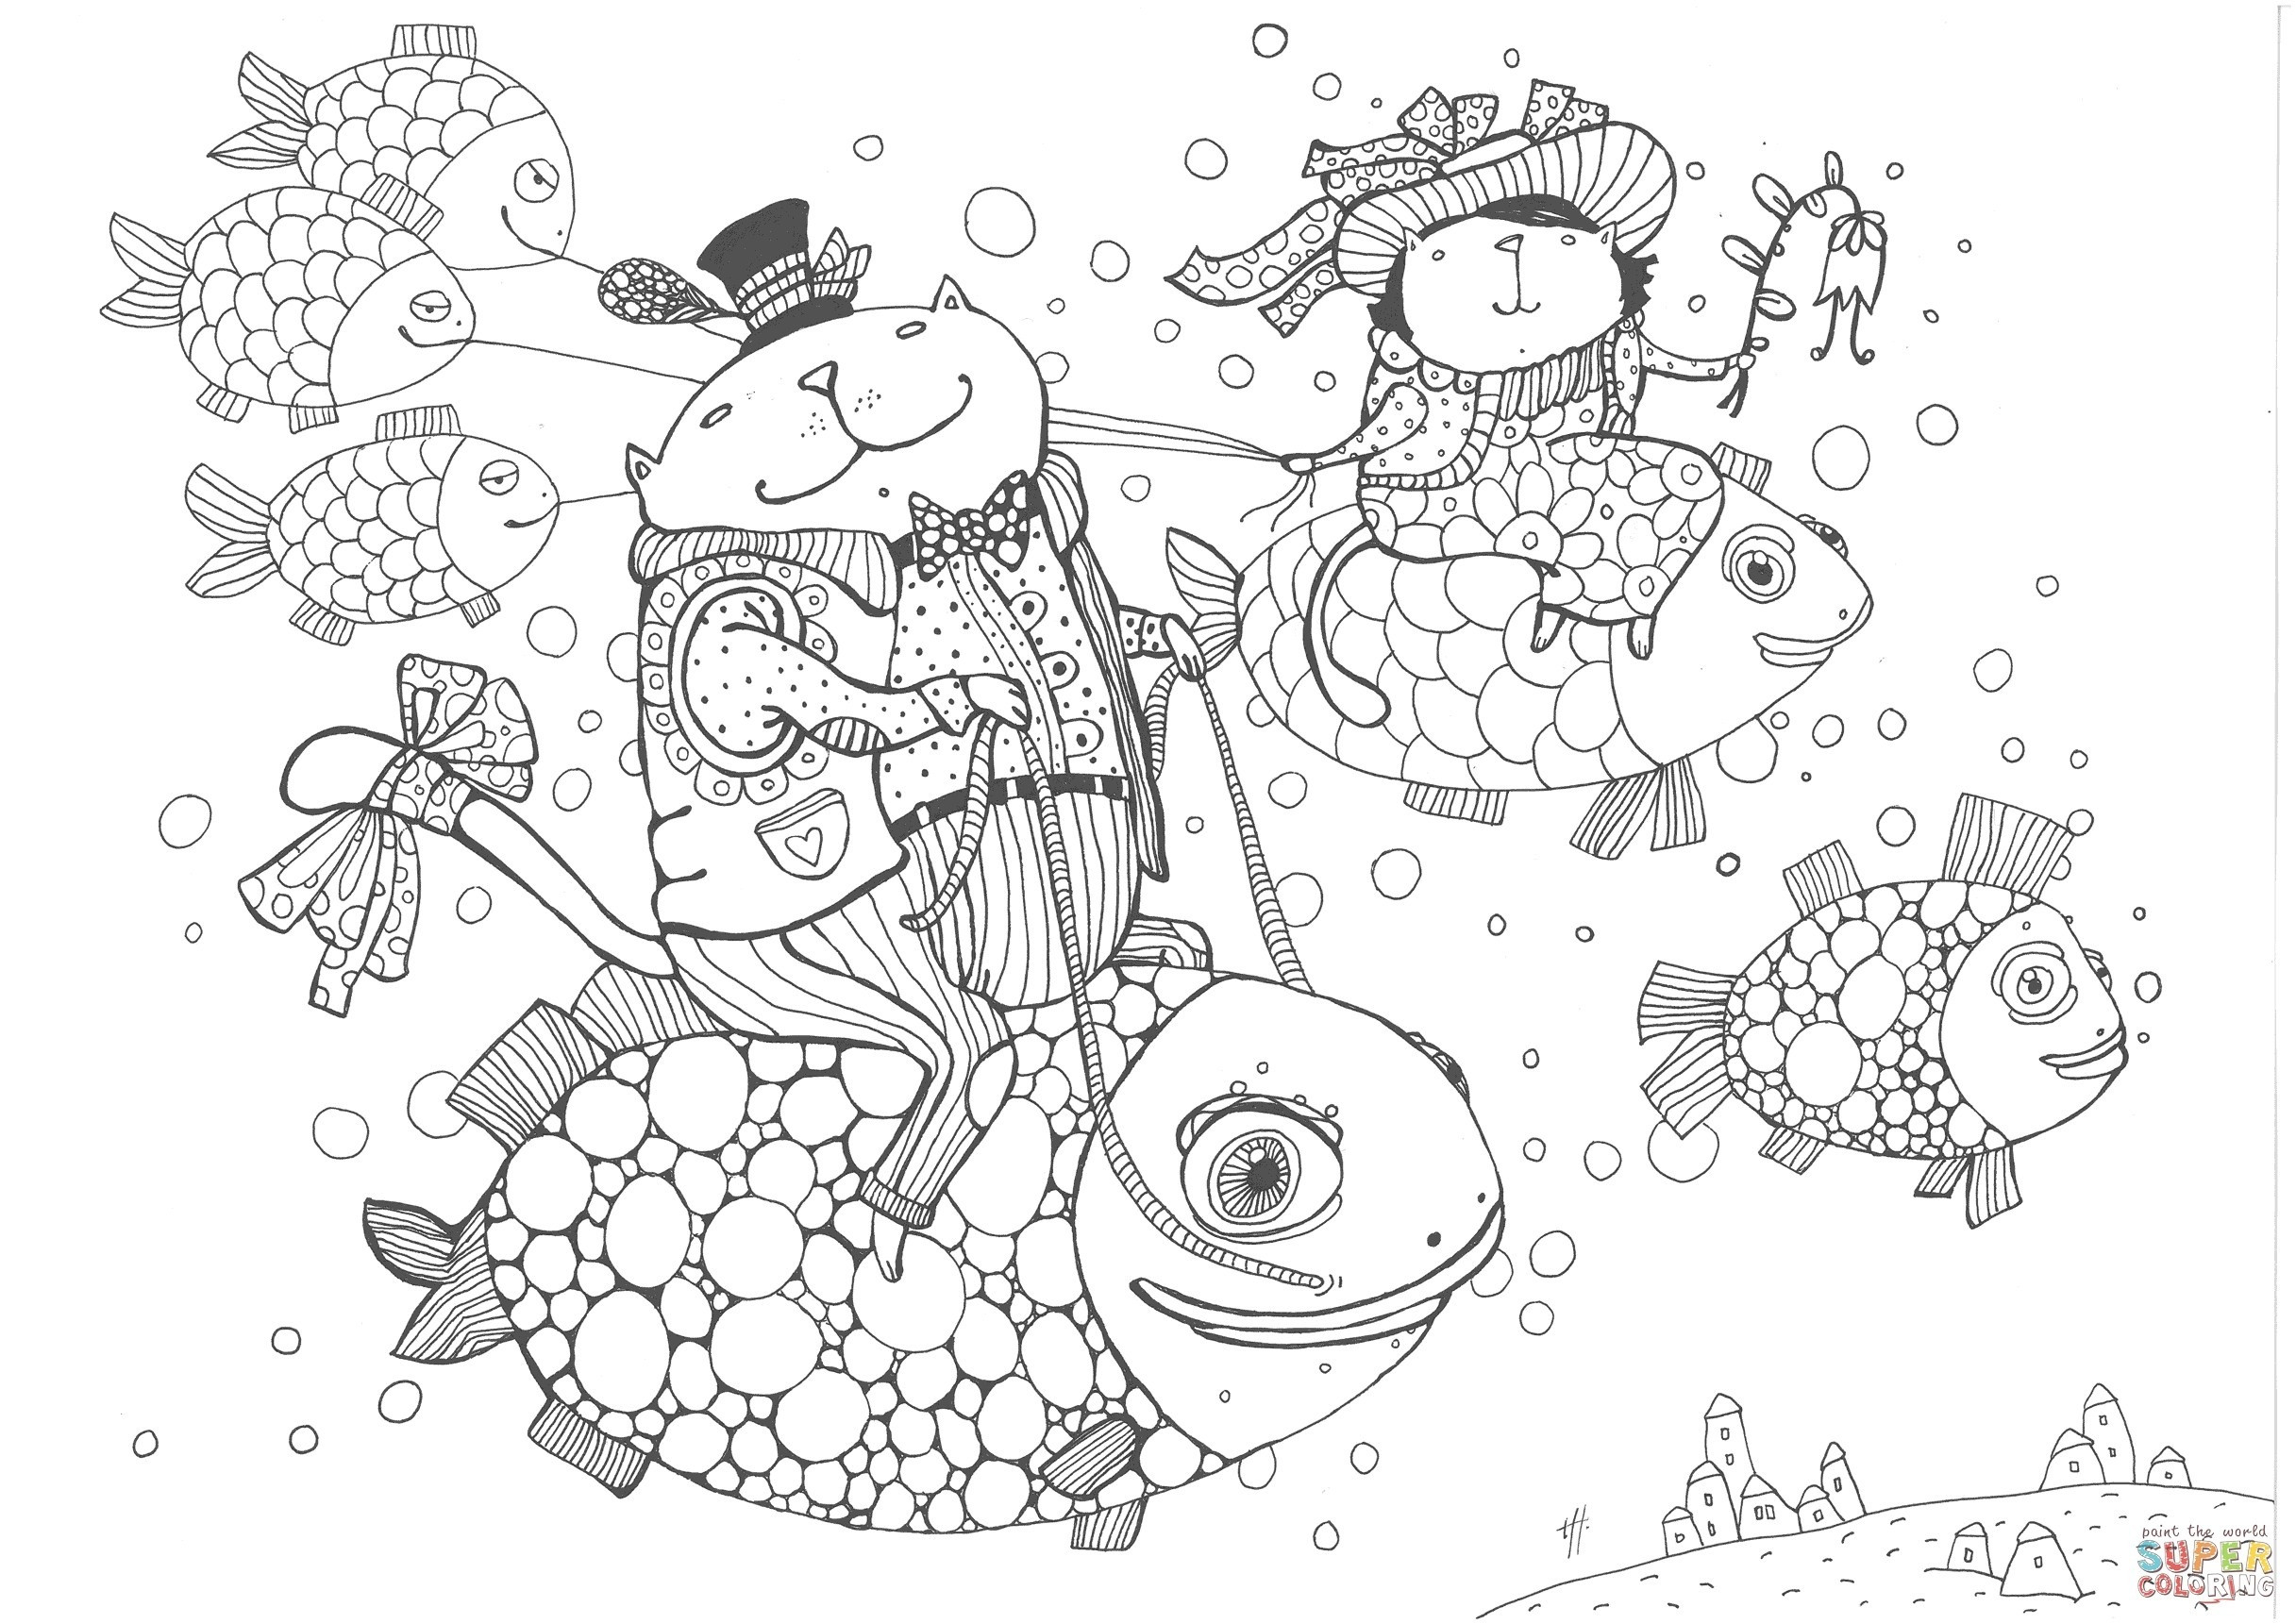 skeletal system coloring pages Collection-Free Printable Skeleton Coloring Pages Awesome Coloring Pages that You Can Color the Puter Lovely Cool 8-a